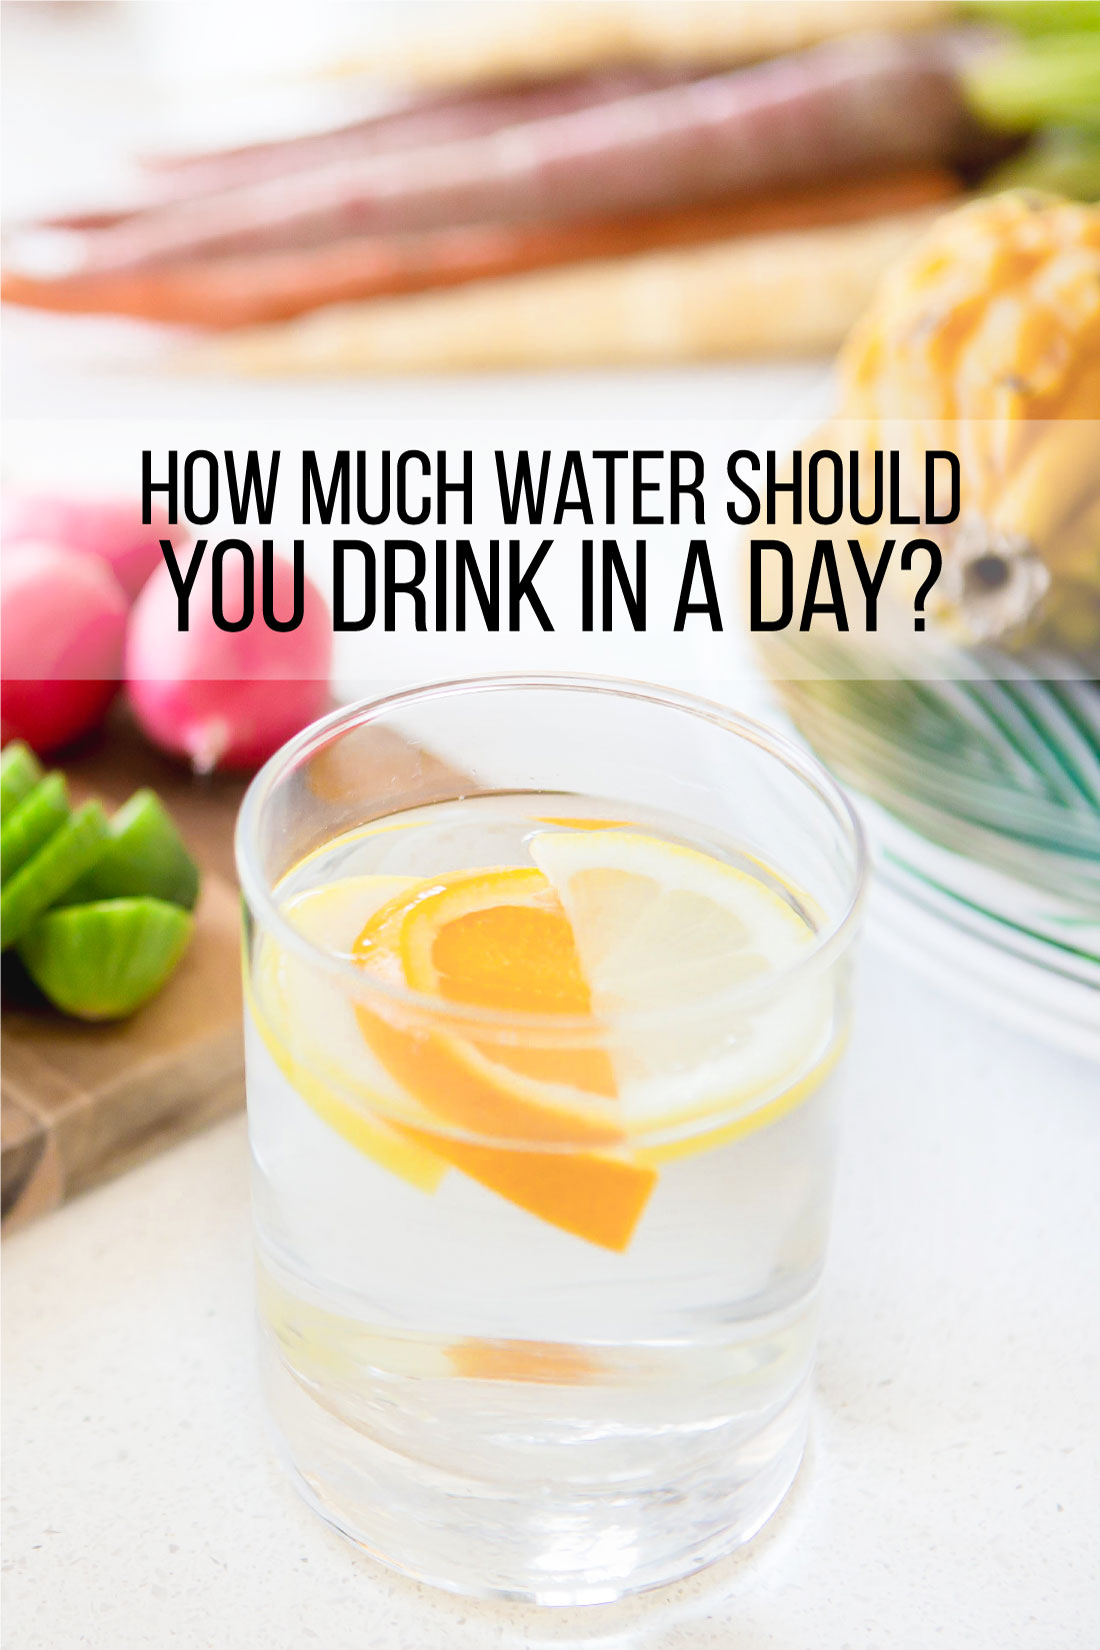 How Much Water Should You Drink in a Day? Tips for ways to drink more water. www.thirtyhandmadedays.com